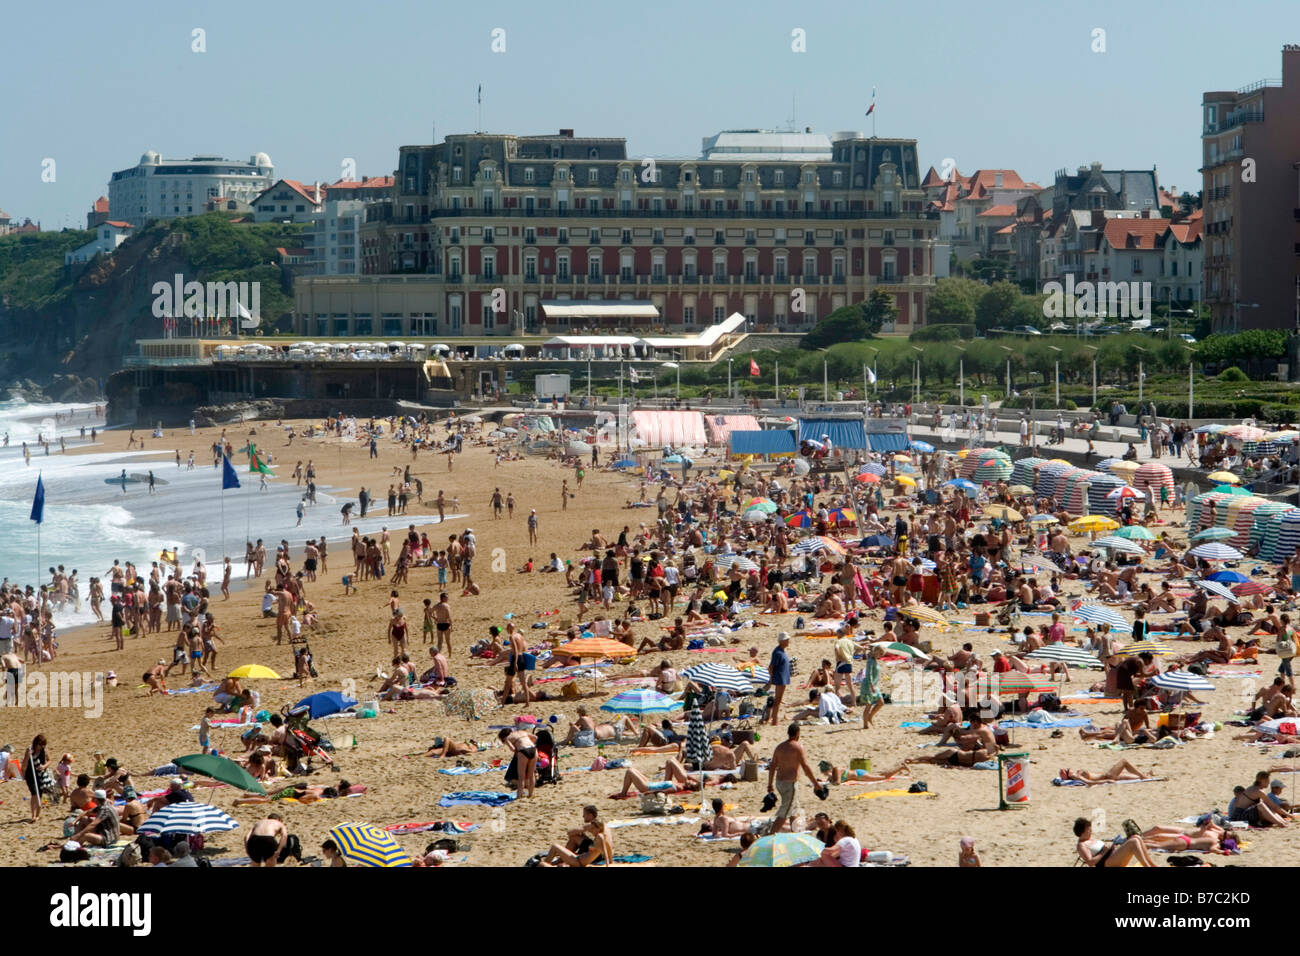 busy beach grande plage Biarritz France - Stock Image